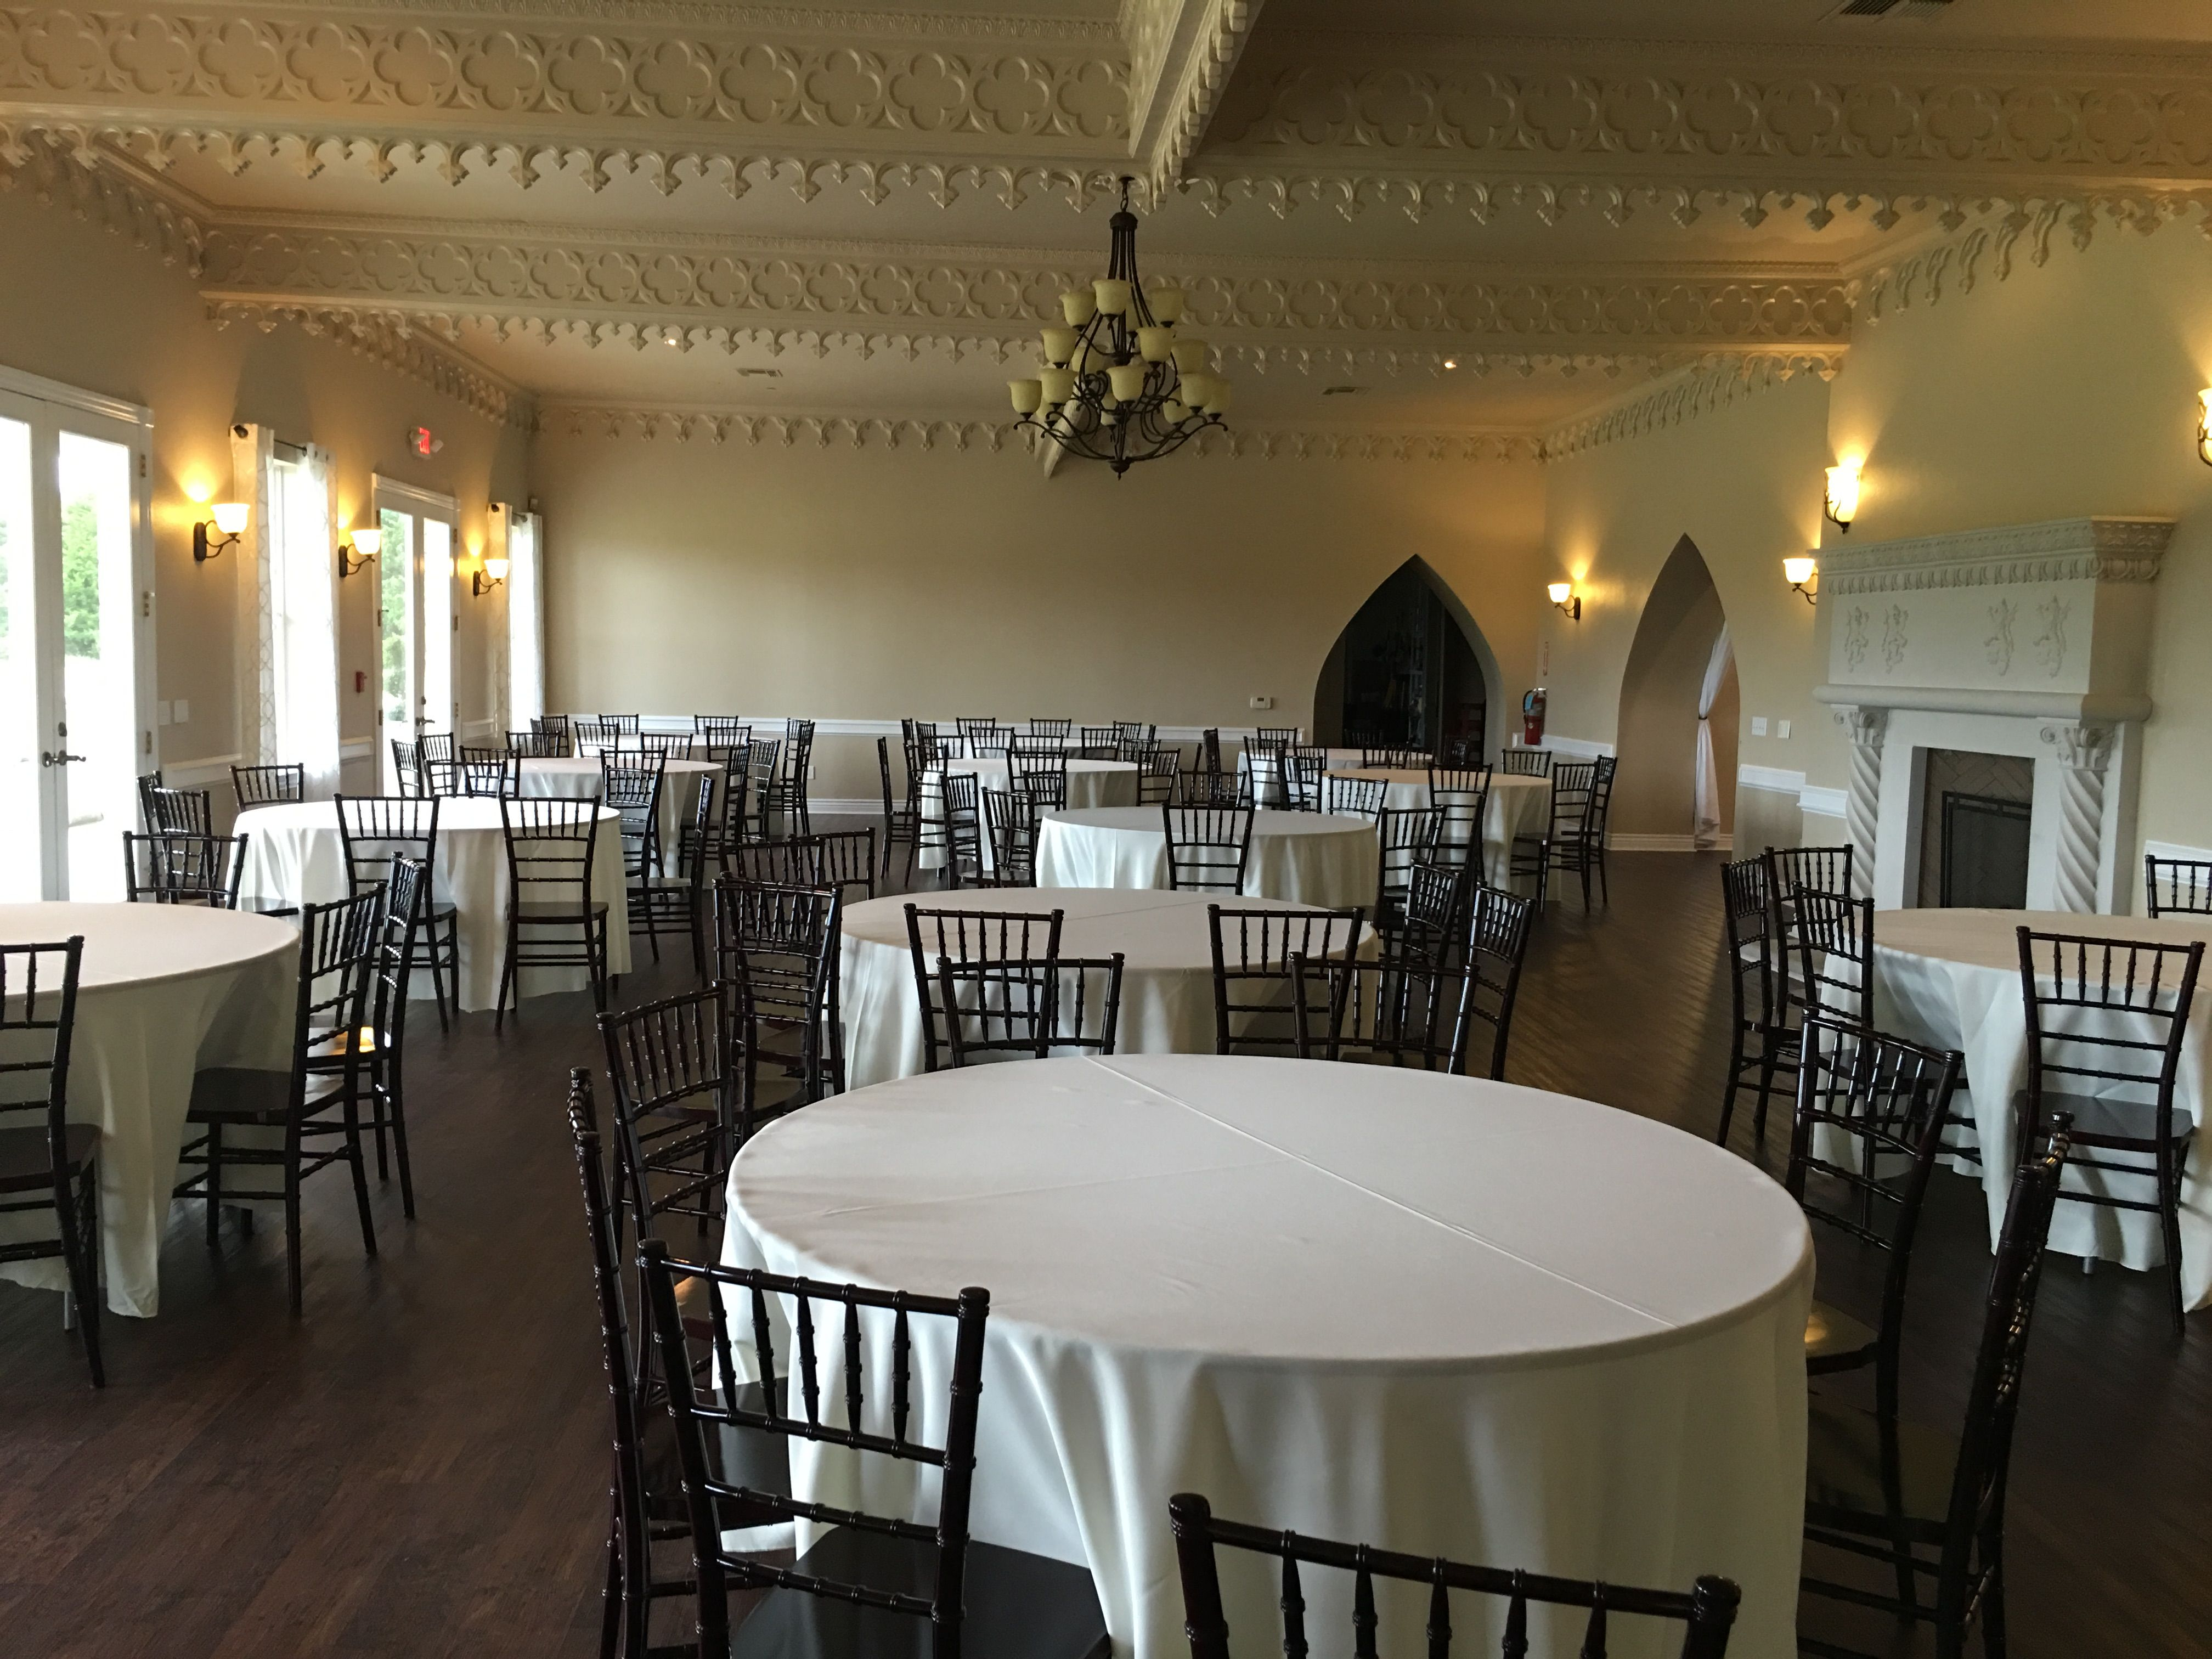 outdoor wedding venues dfw texas%0A Reception space at the Castle at Rockwall  Wedding venues in DFW